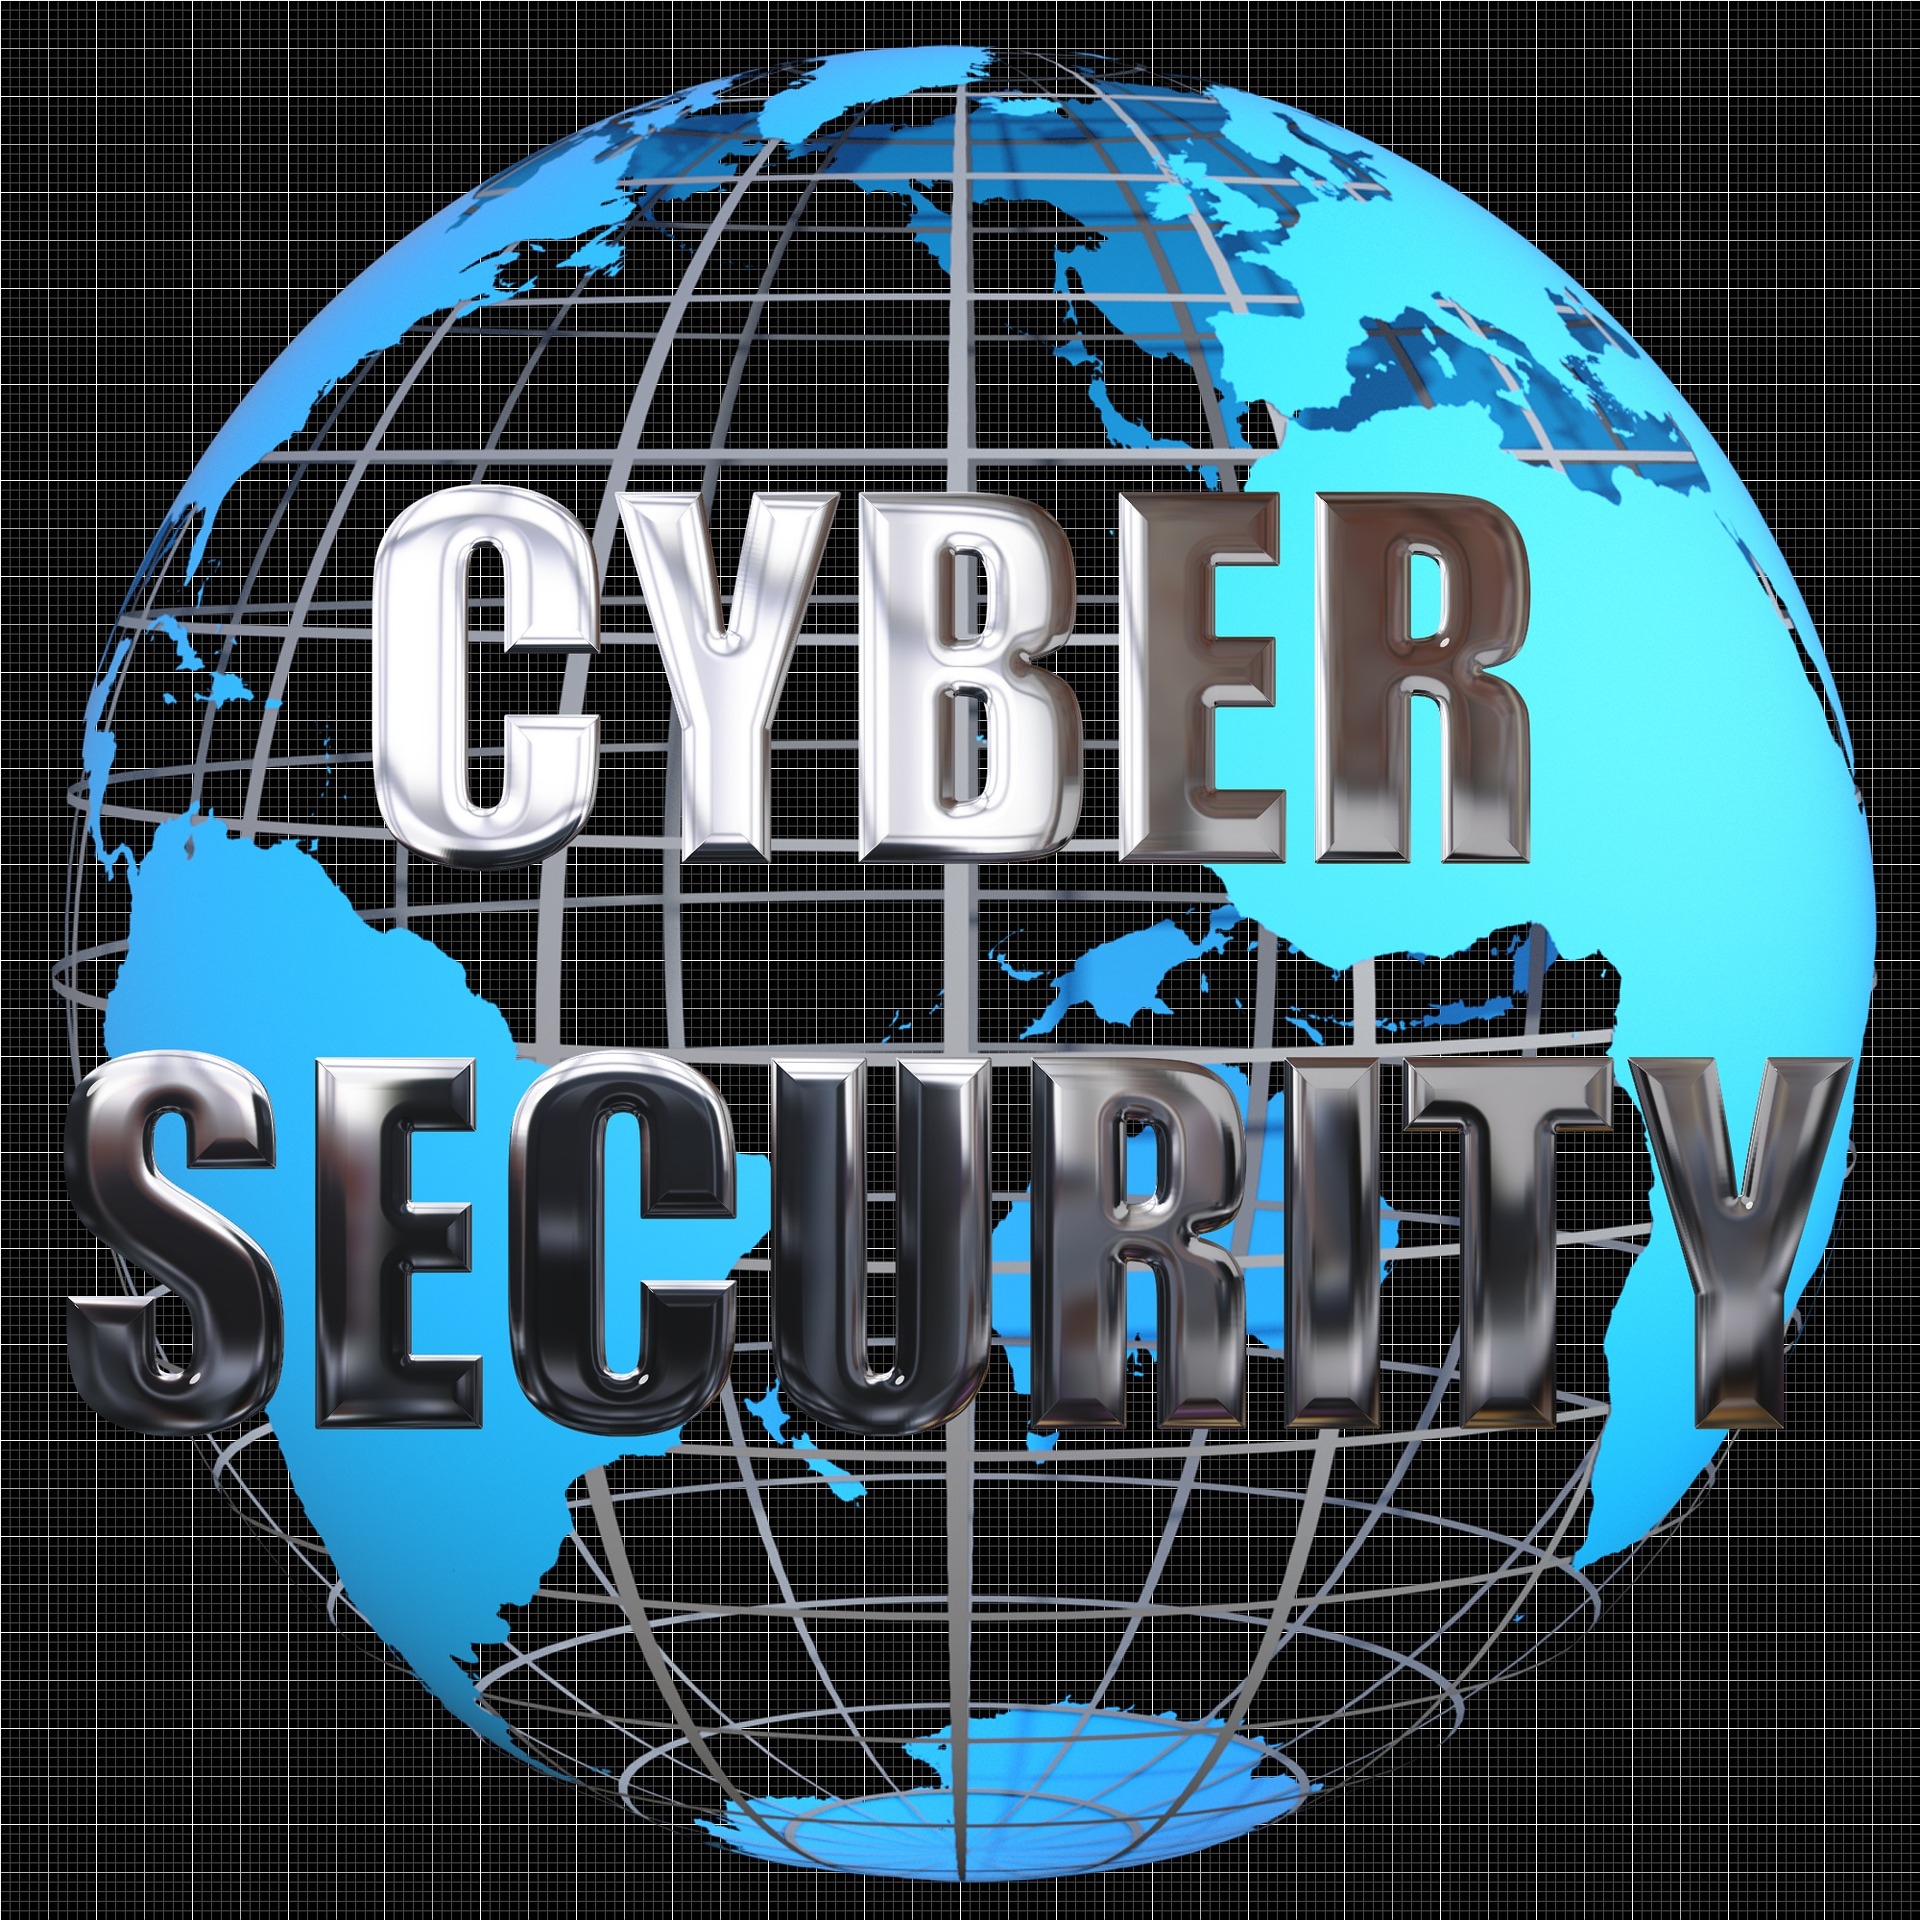 US, Dutch teams to collaborate further on cybersecurity